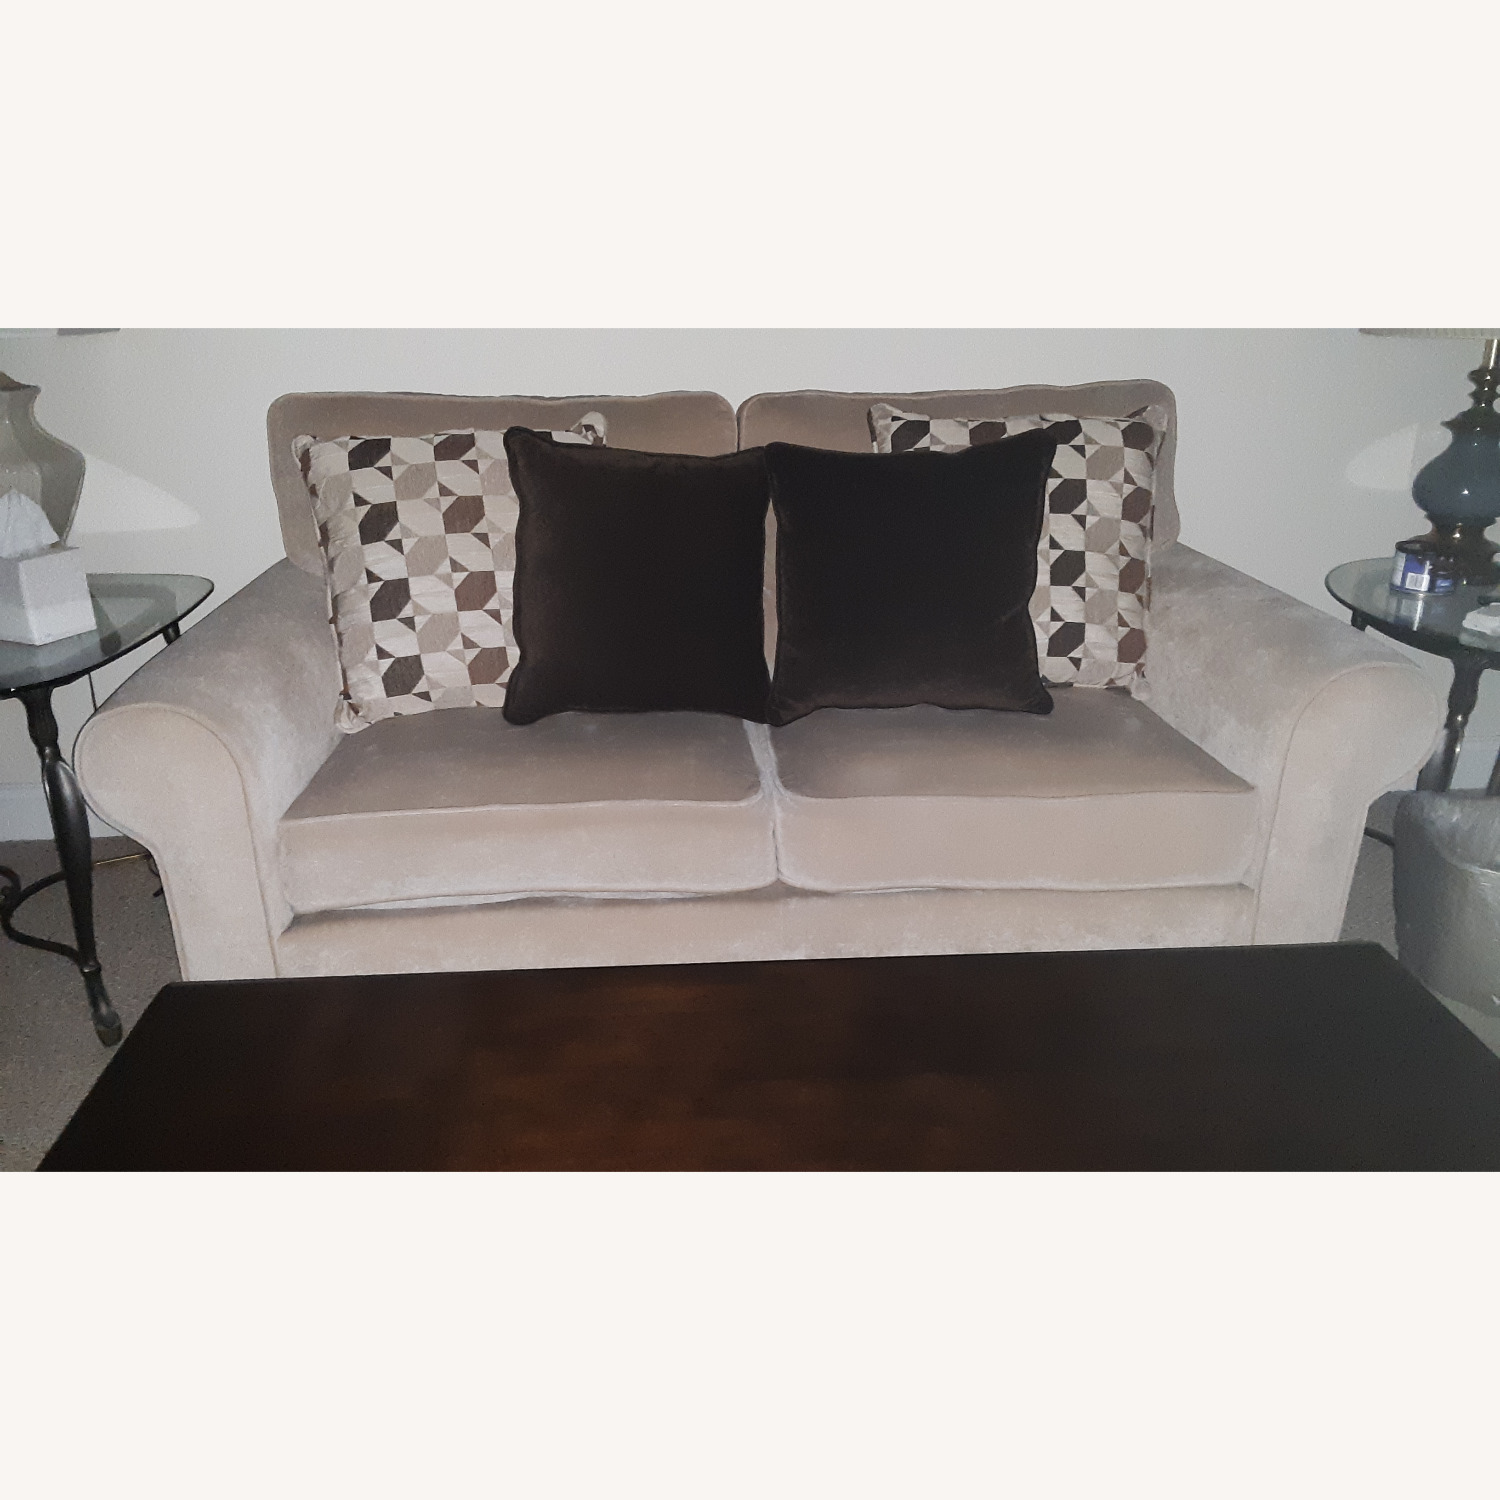 Bobs Maggie 72 roll-arm 2-cushion Loveseat - image-2